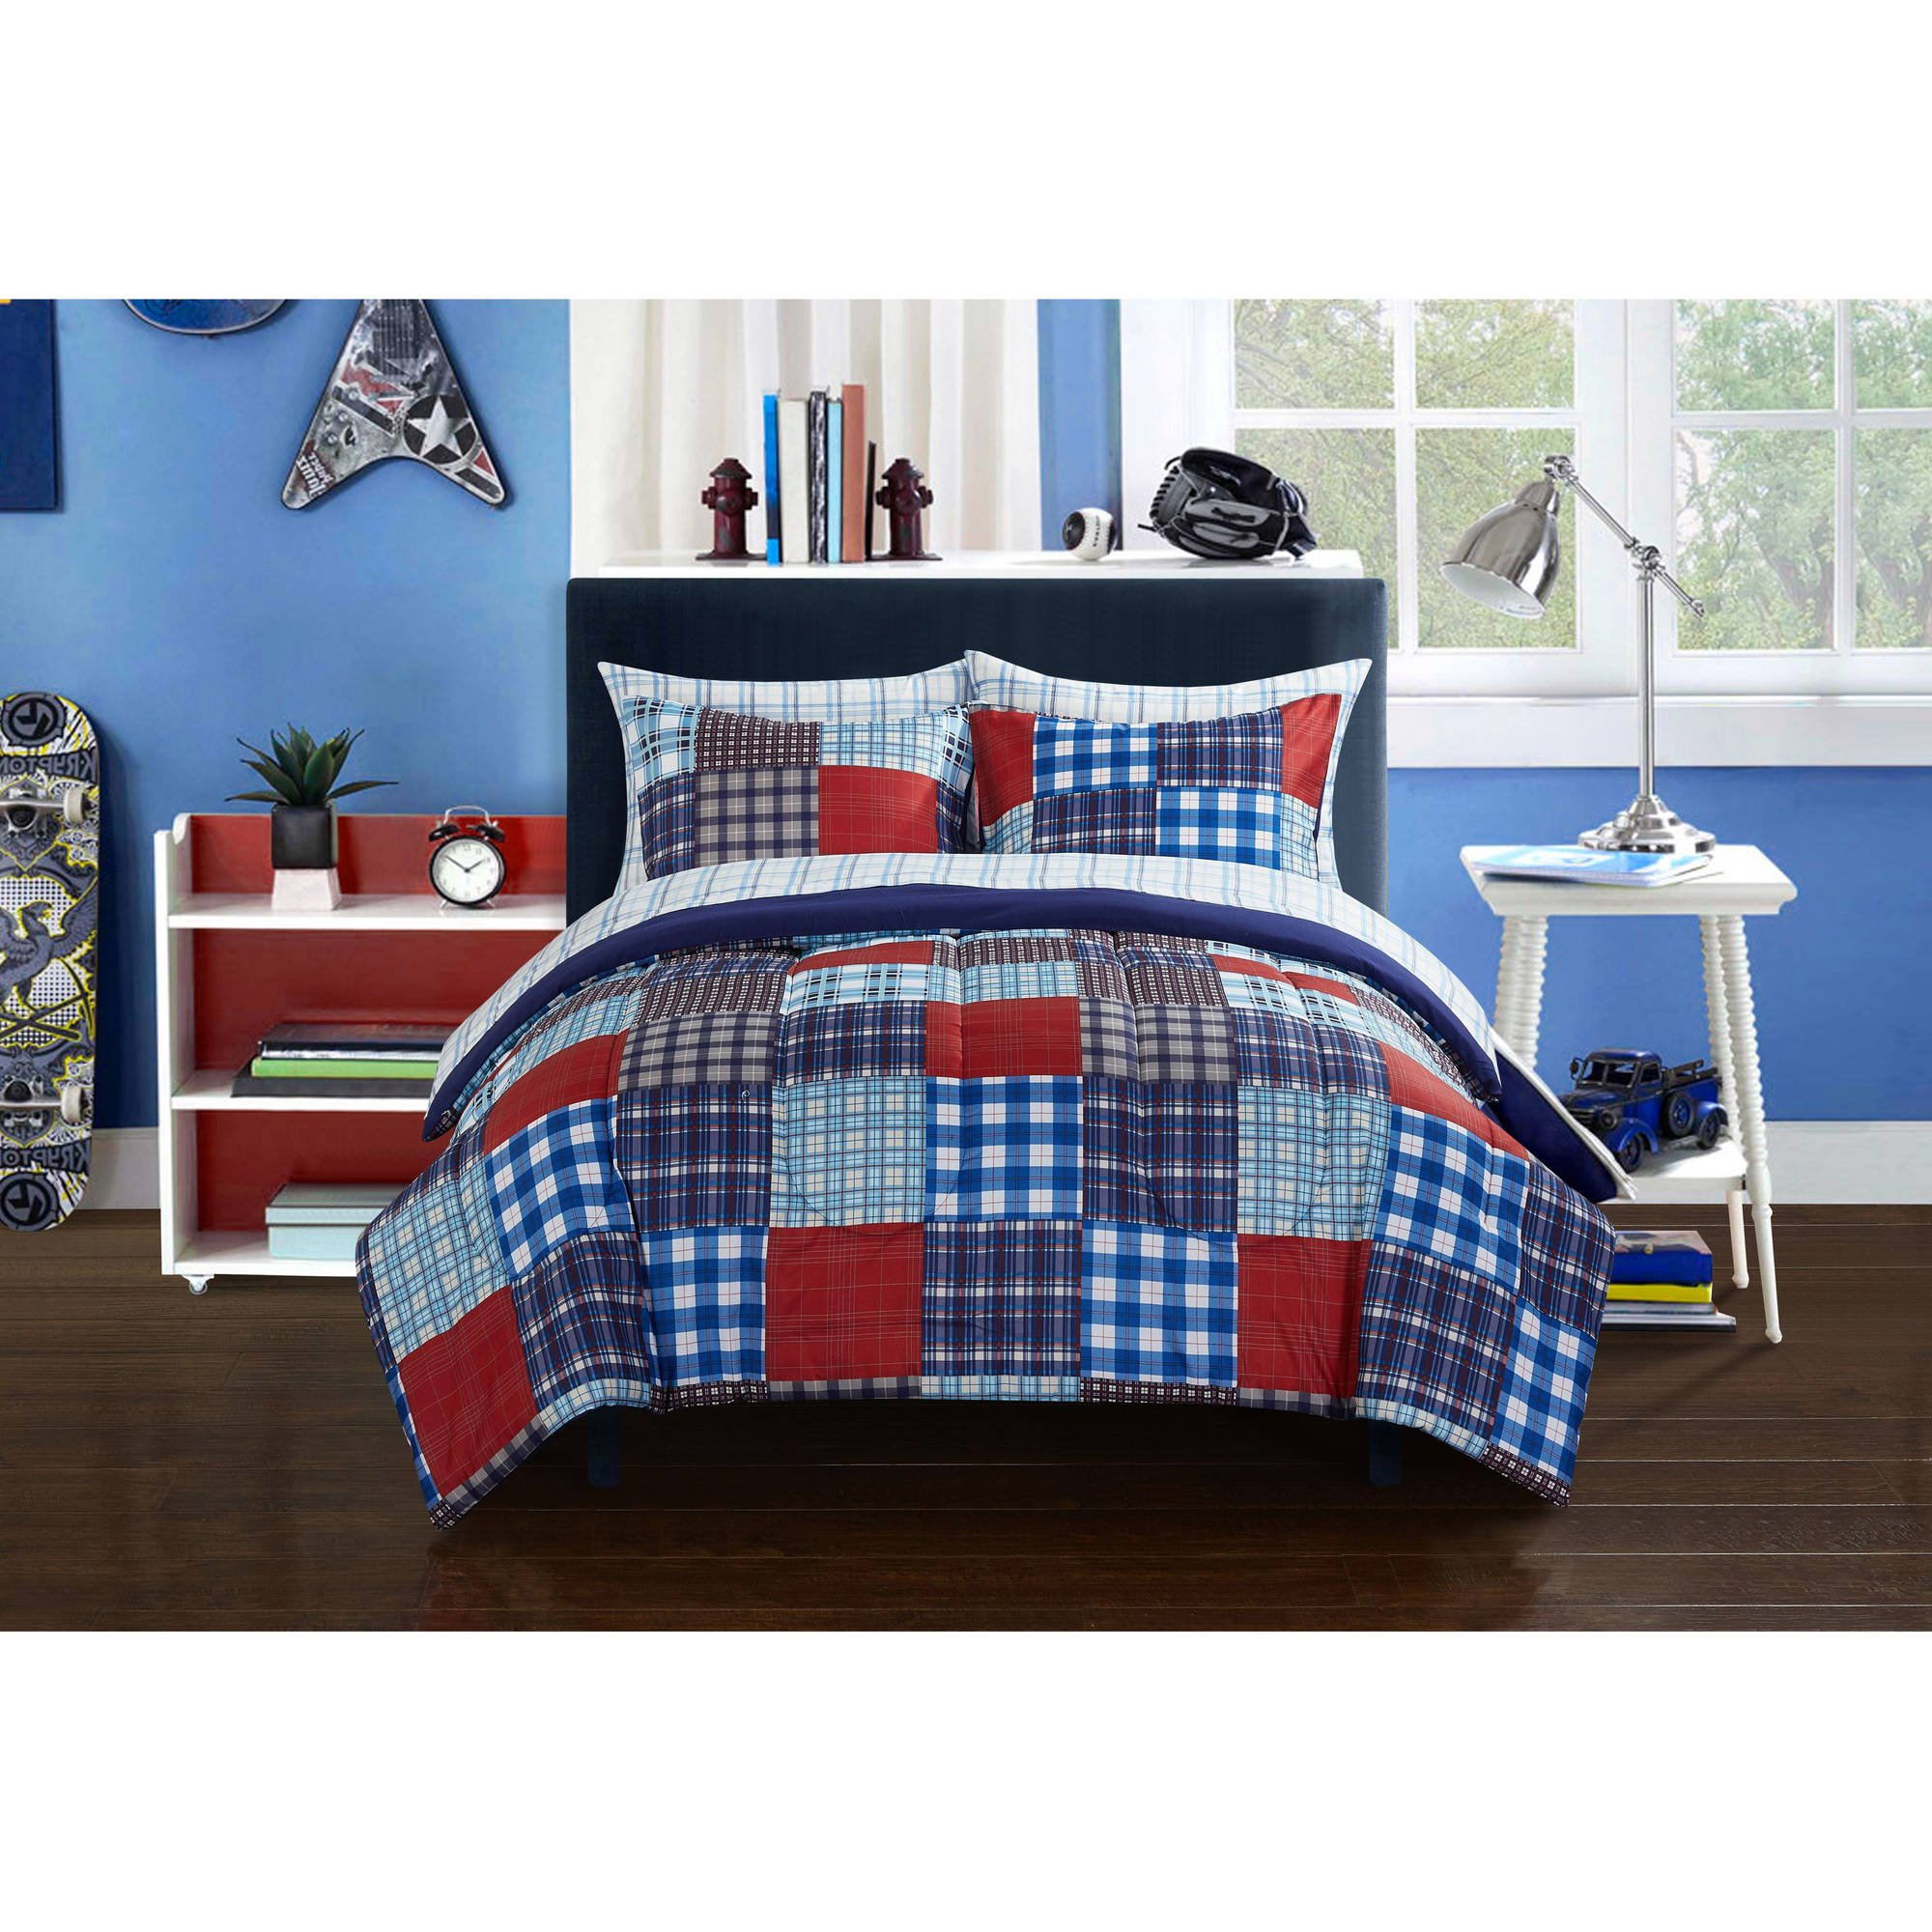 Trendy, Durable and Reversible Mainstays Kids Mad Plaid Blue Bed in a Bag Bedding Set, Twin